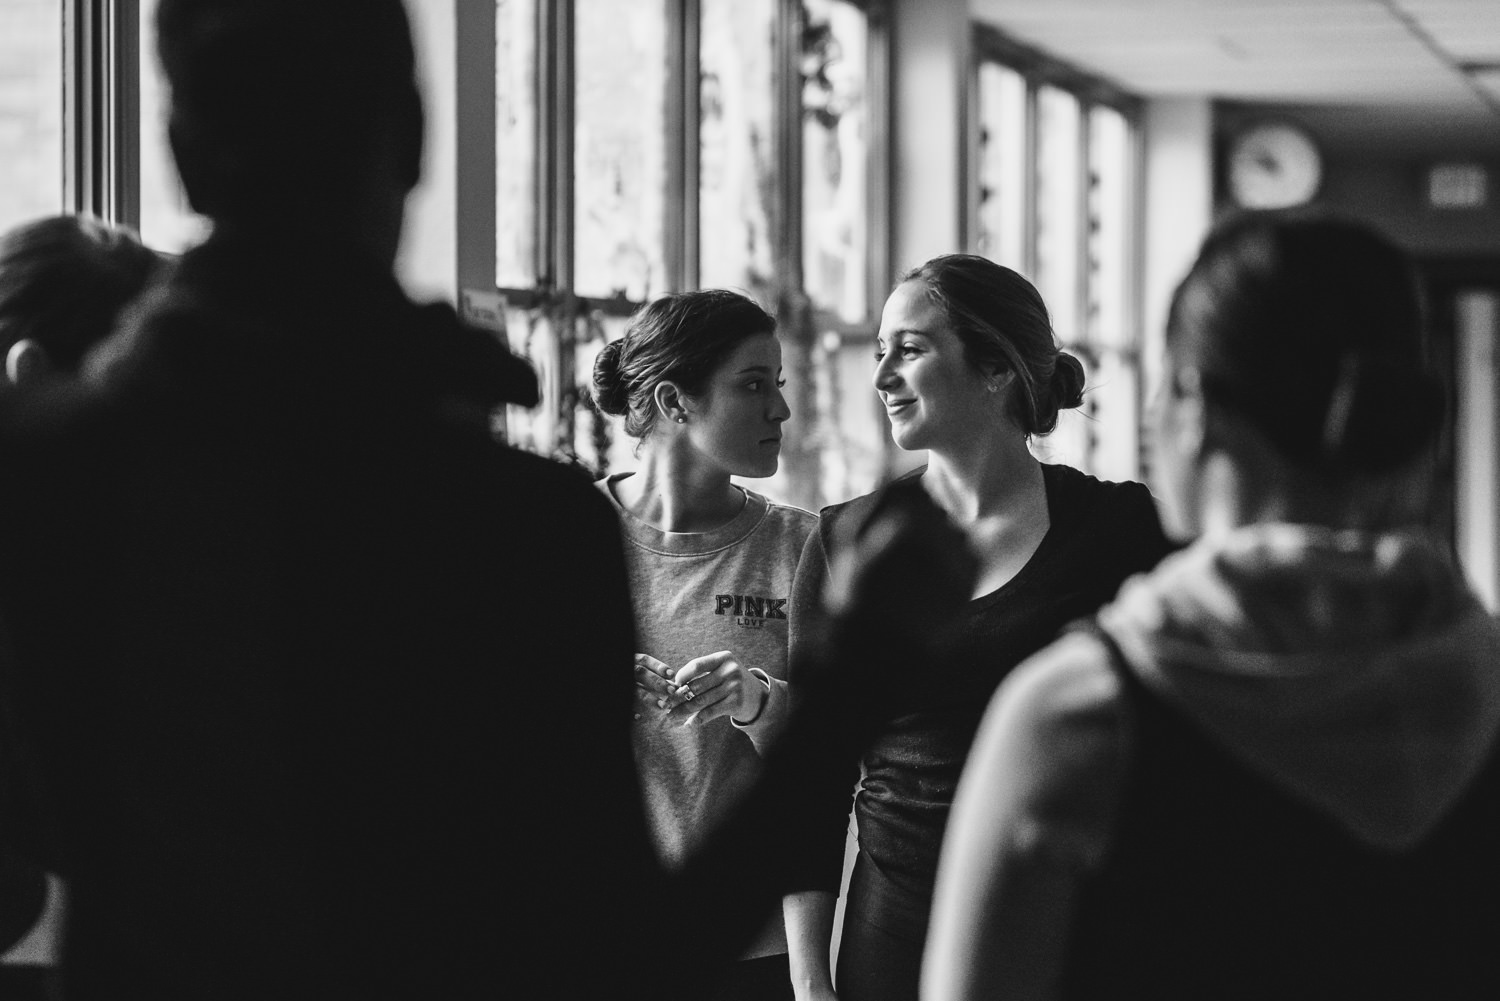 Dancers rehearse in the hallway at Trinity High School in Hicksville.